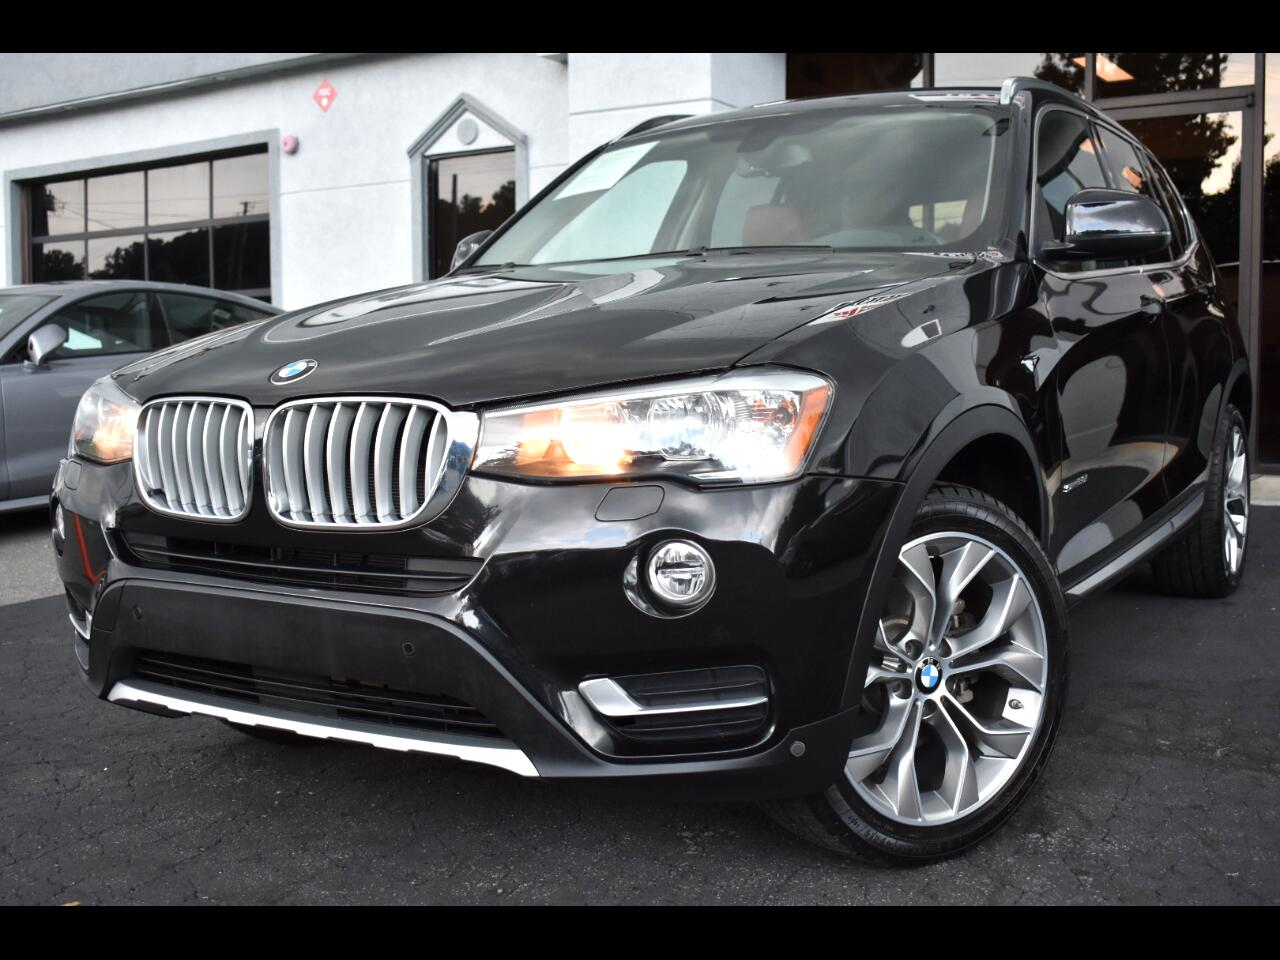 BMW X3 sDrive28i Sports Activity Vehicle 2017